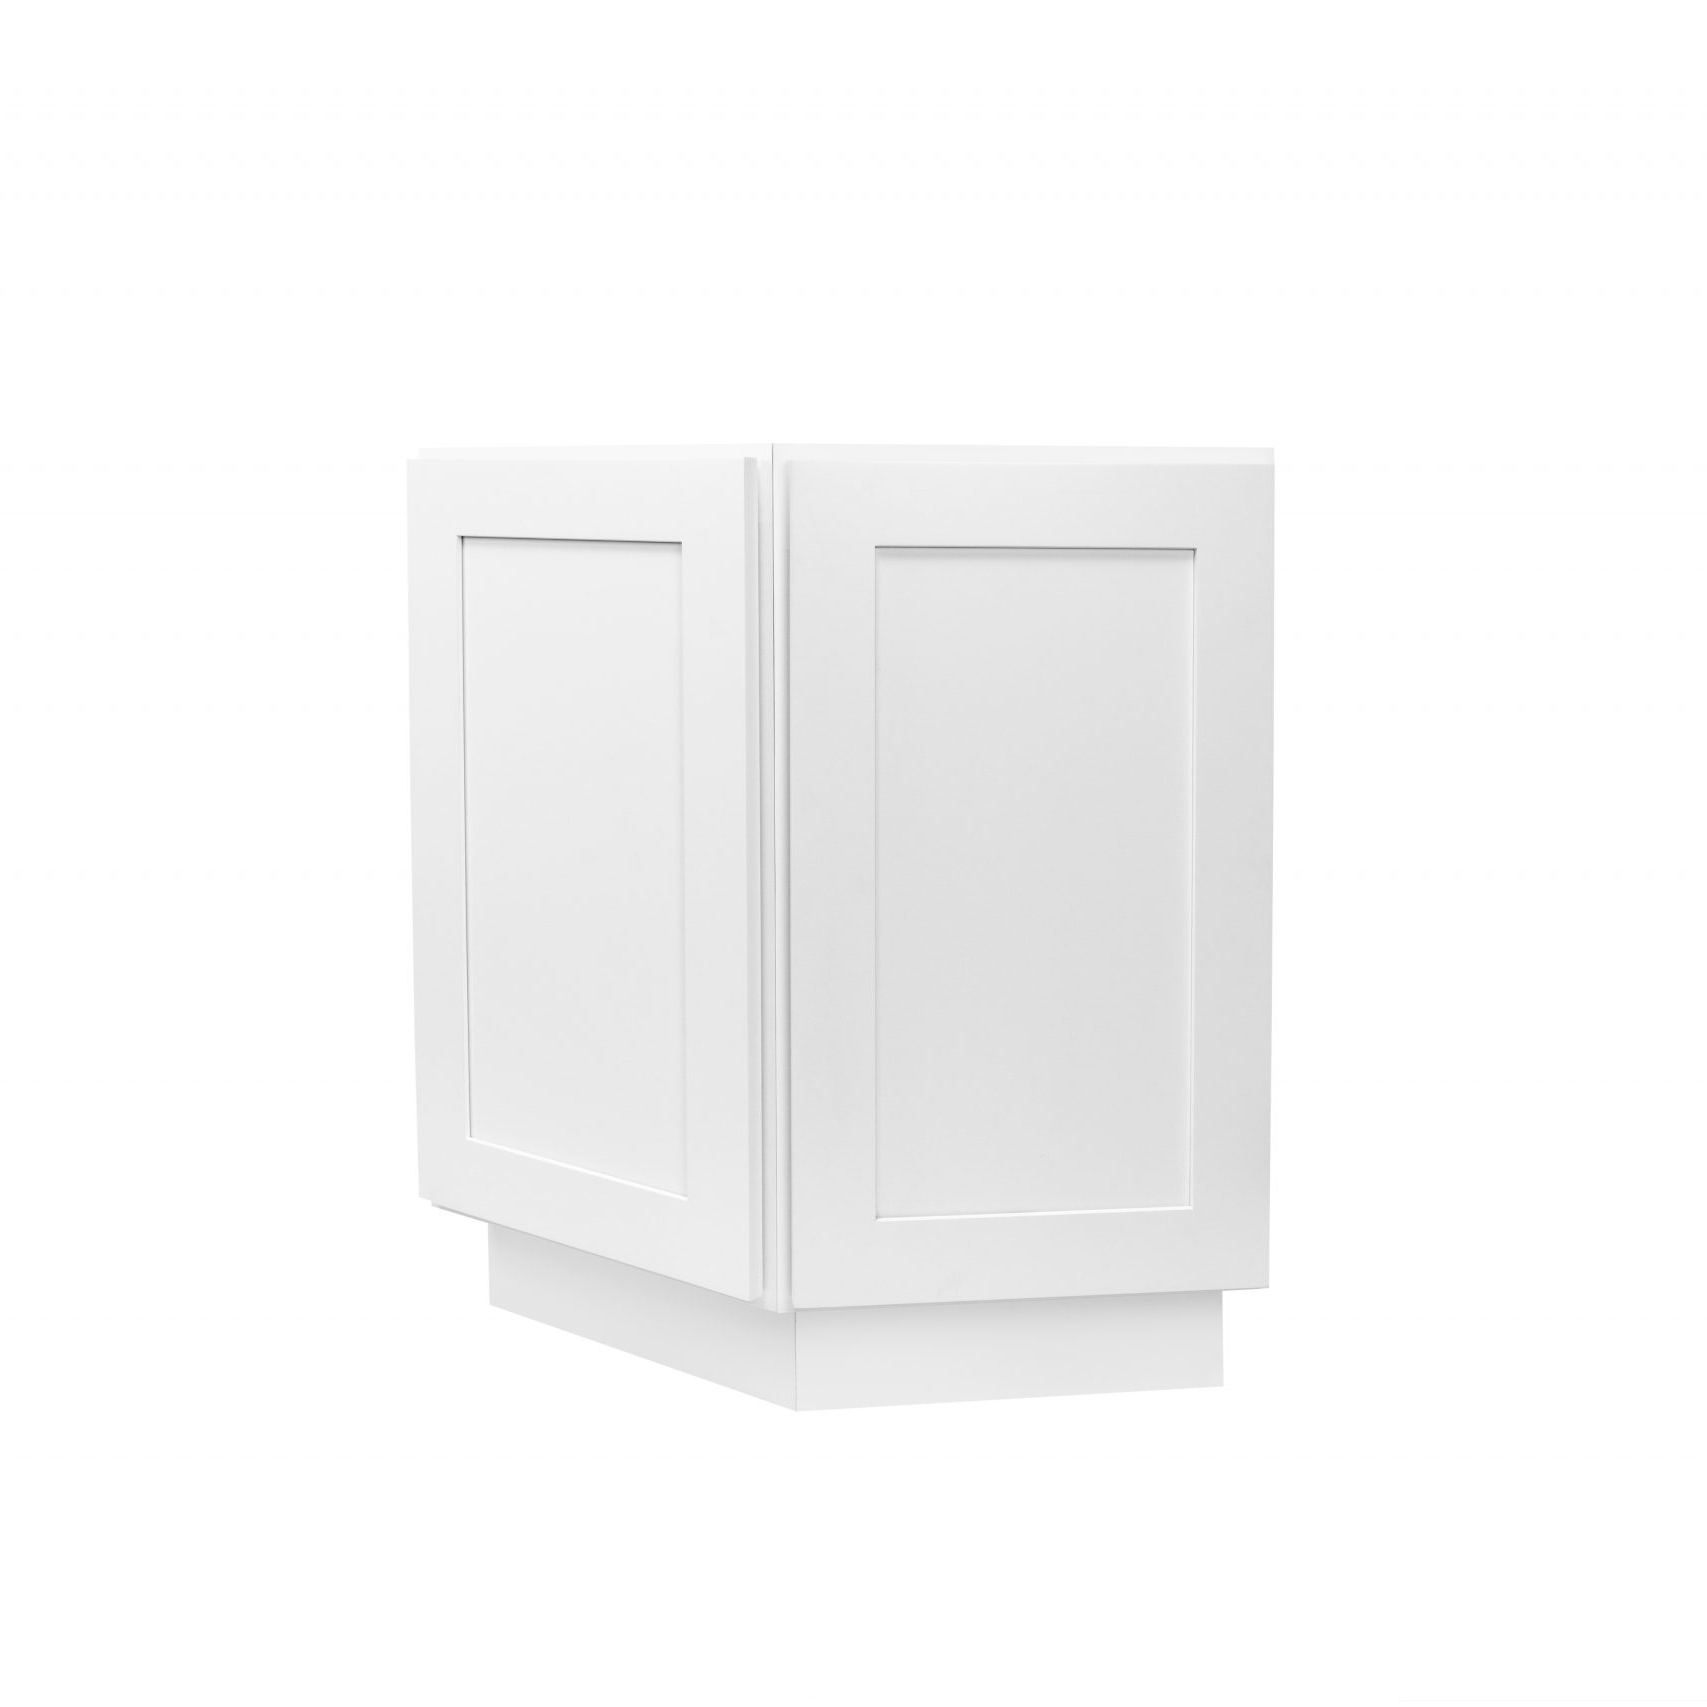 White Shaker Cabinetry BEA24